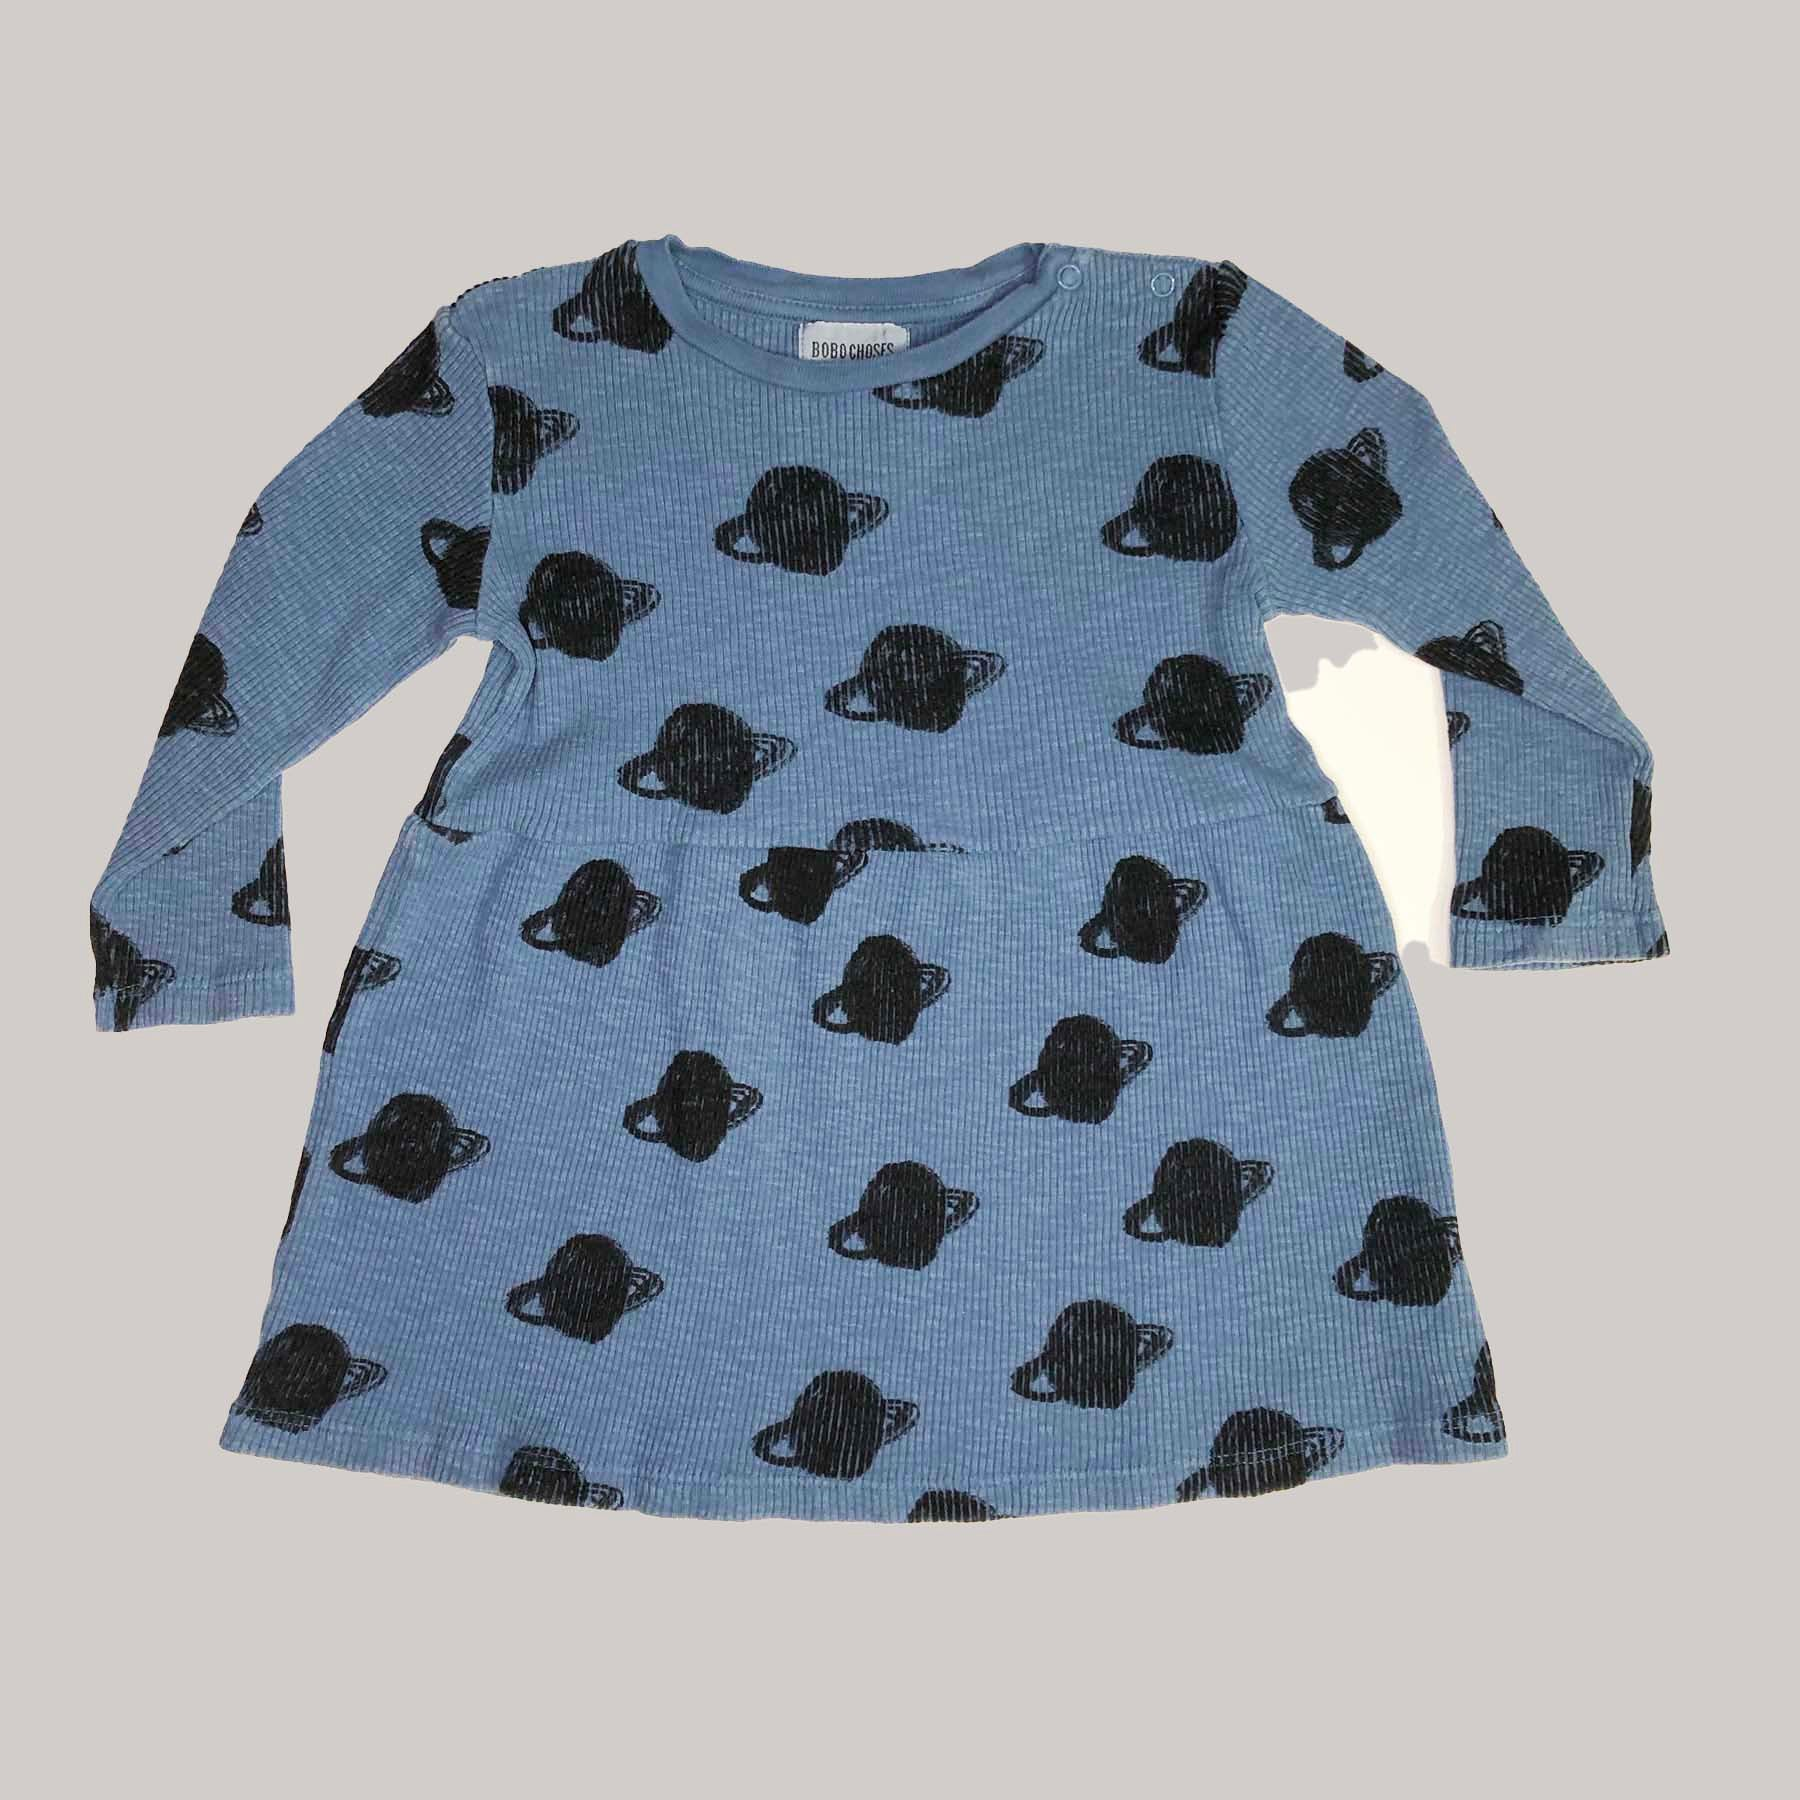 Re-wear : Bobo Choses saturn mekko, blue  | 86cm